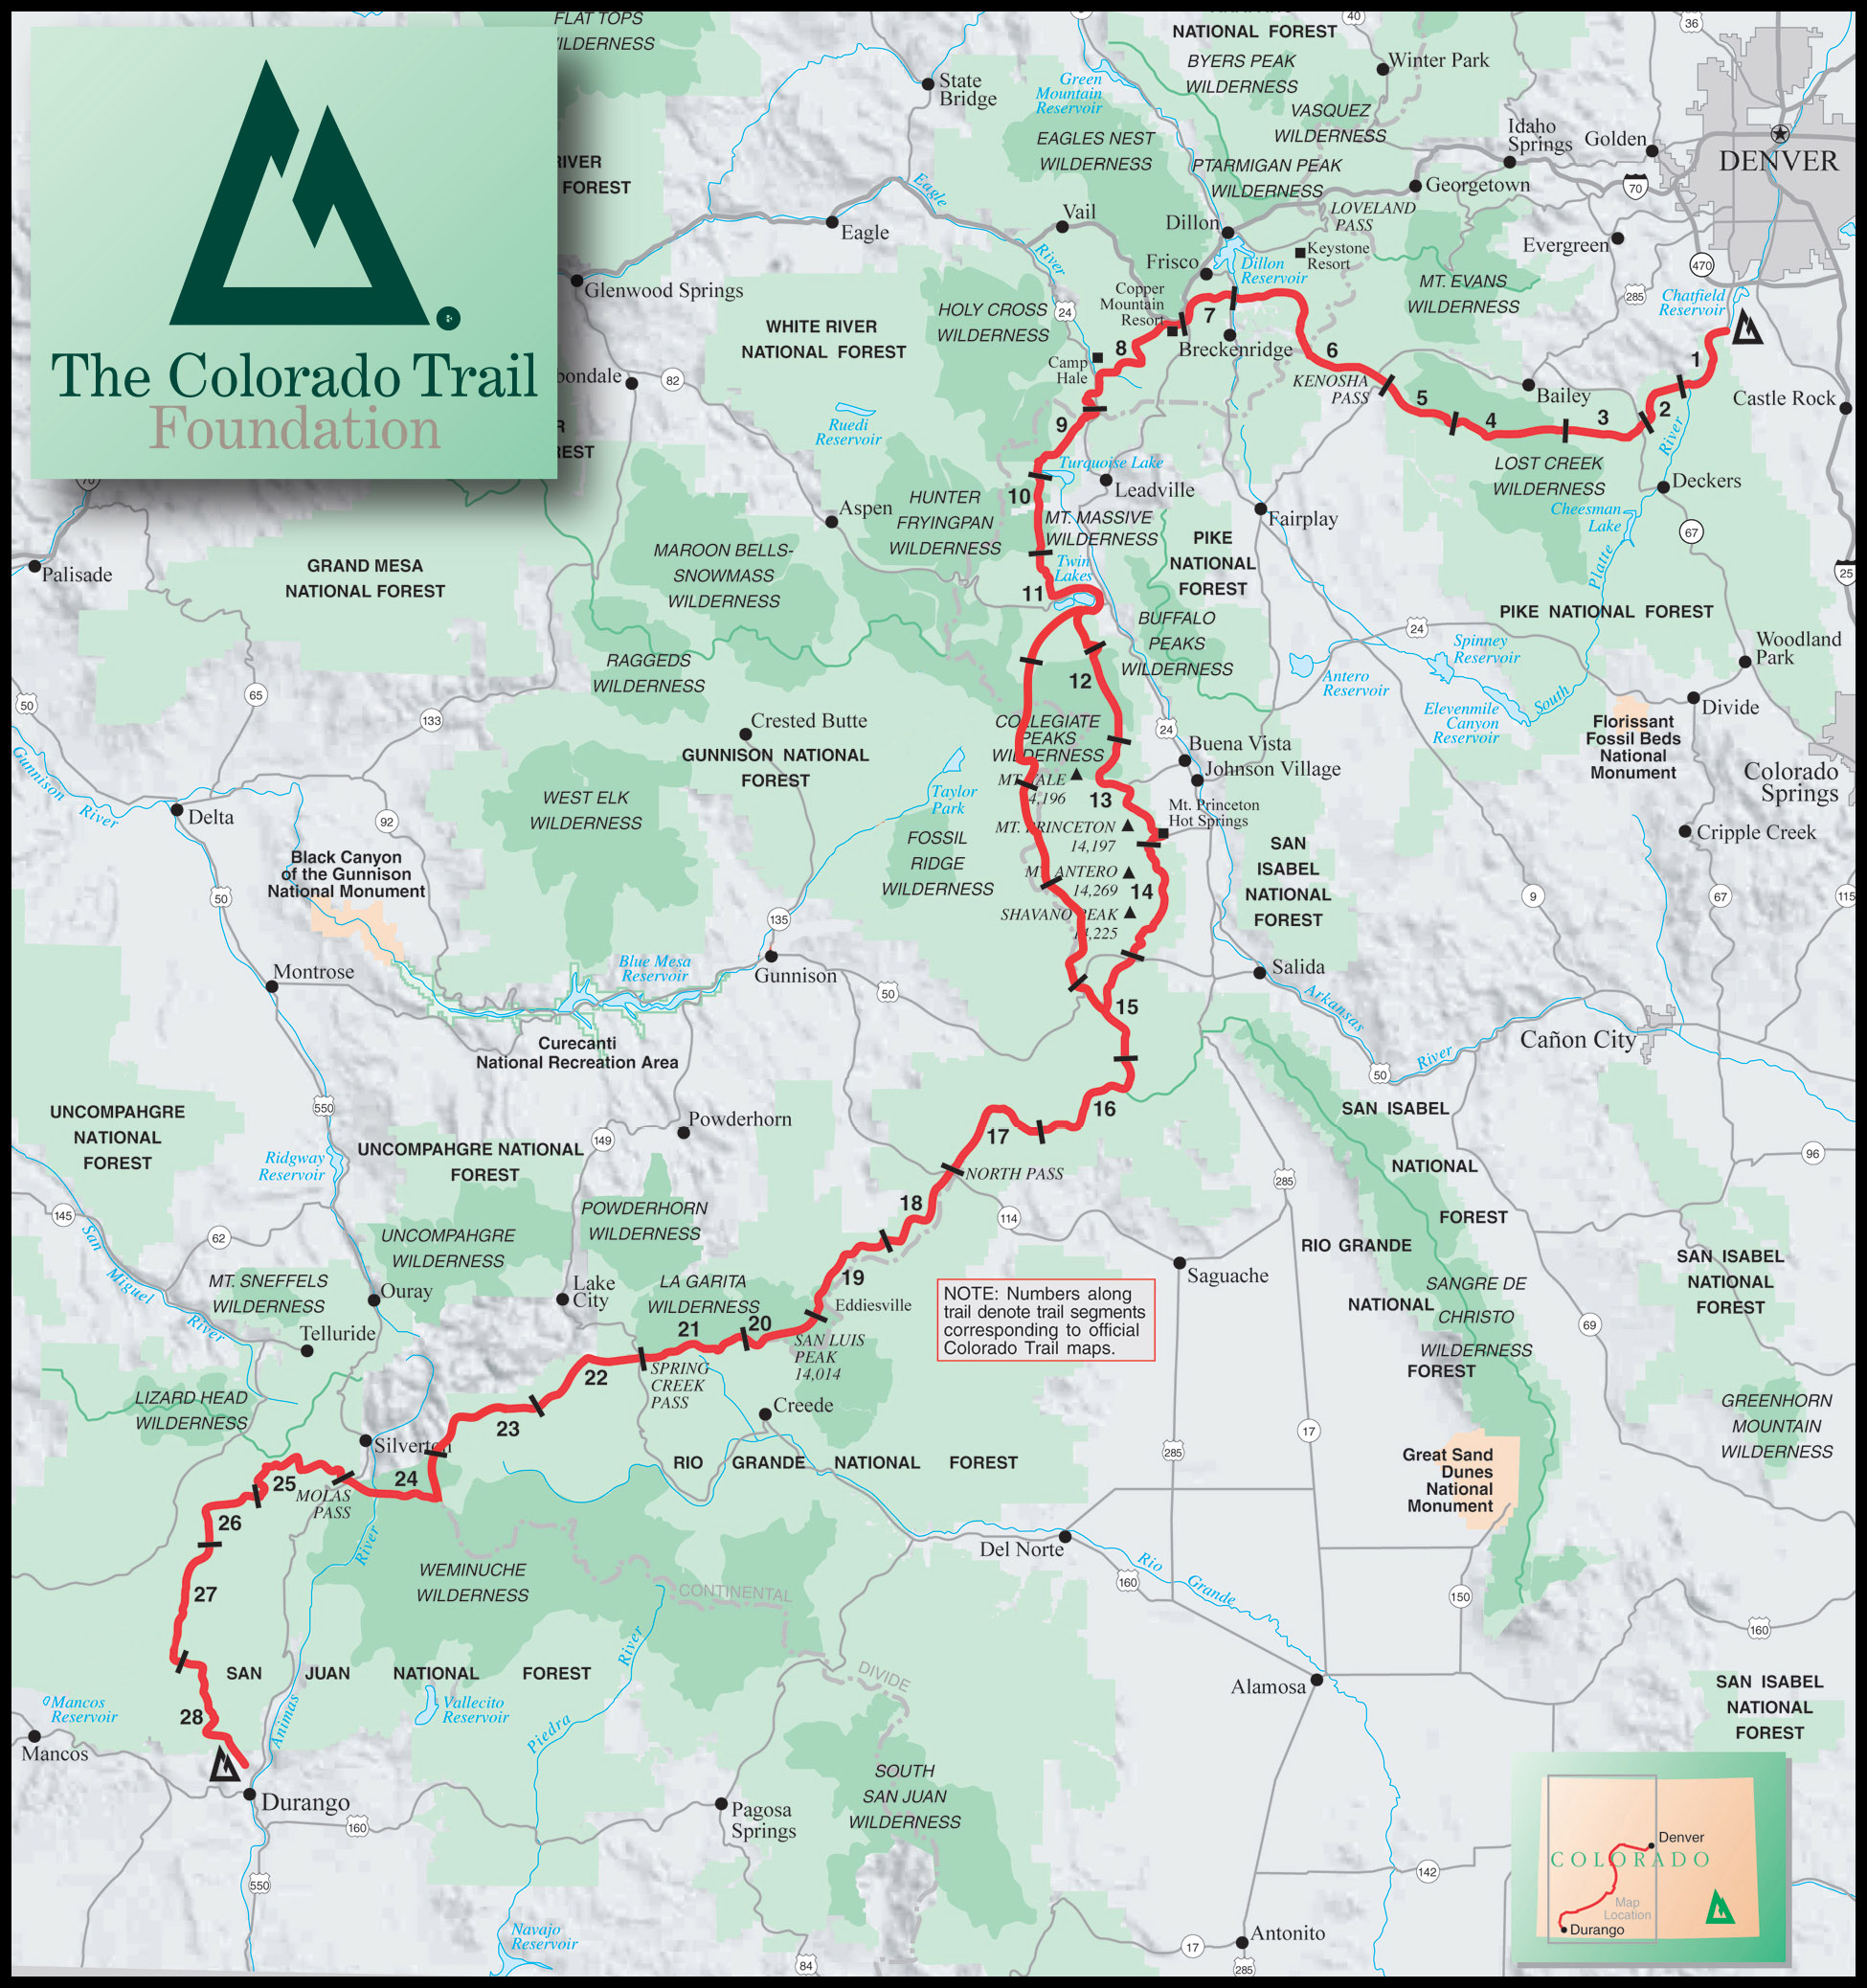 The Colorado Trail Map From The Colorado Trail Foundation.